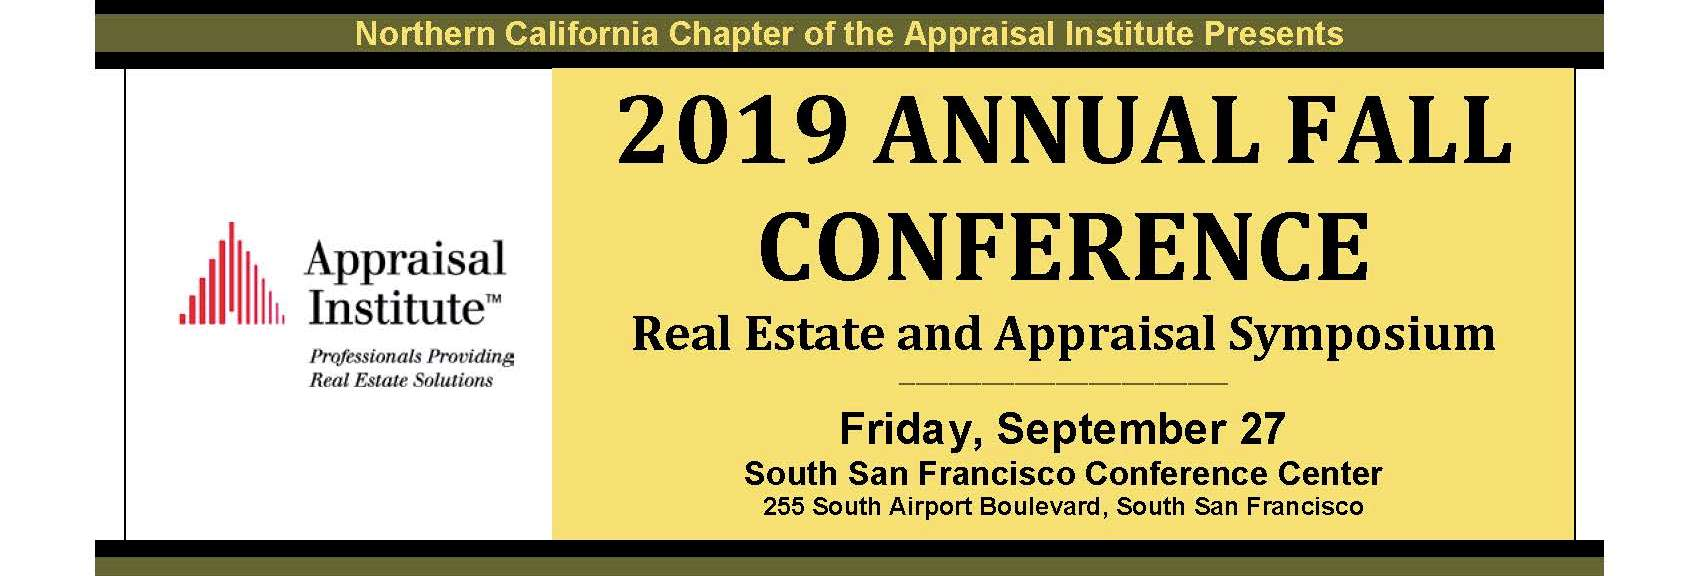 2019 Annual Fall Conference: Real Estate and Appraisal Symposium